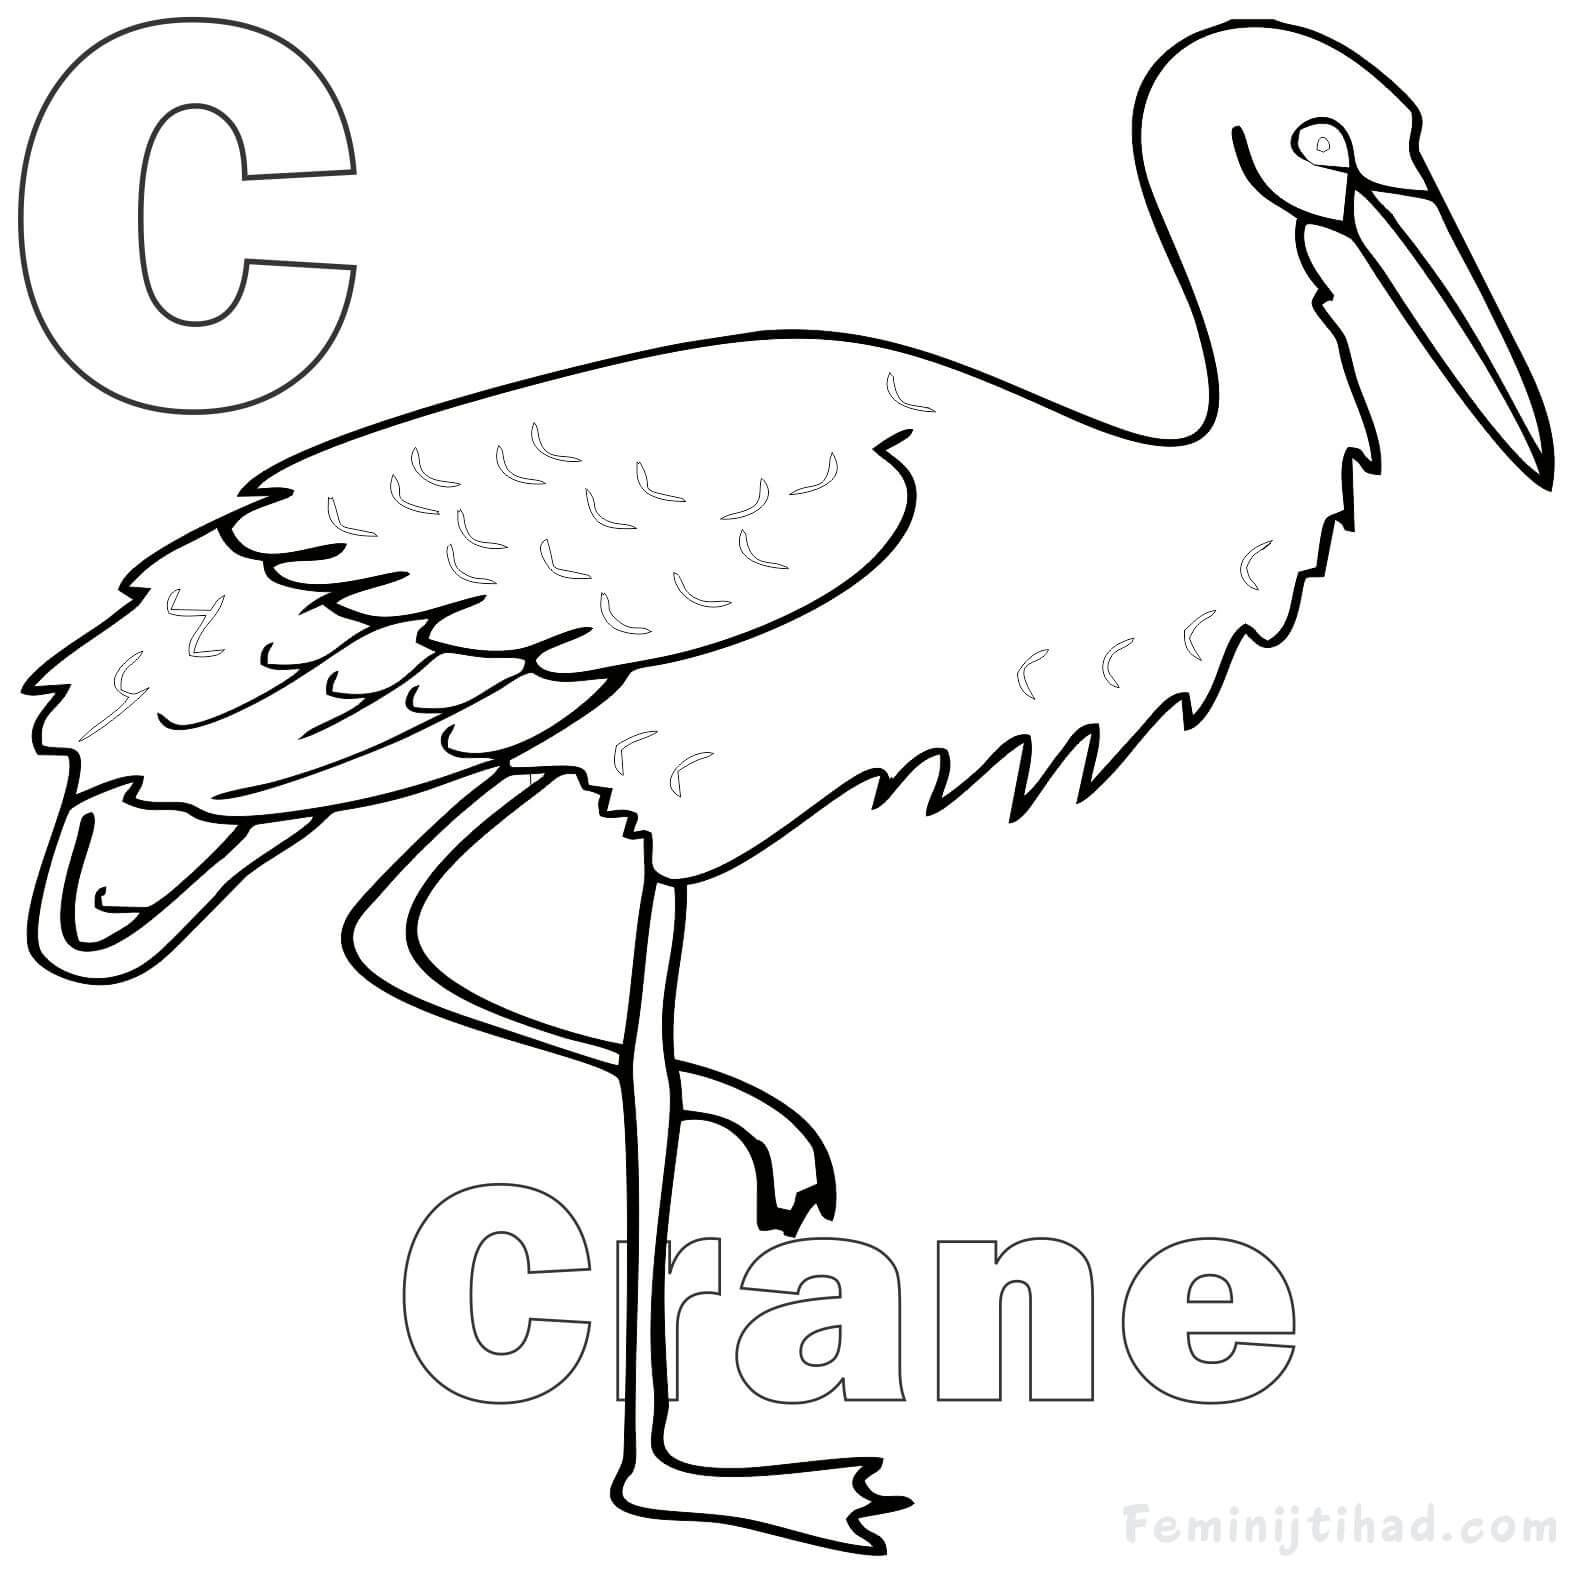 Letter C For Crane Coloring Pages For Kids Bird Coloring Pages